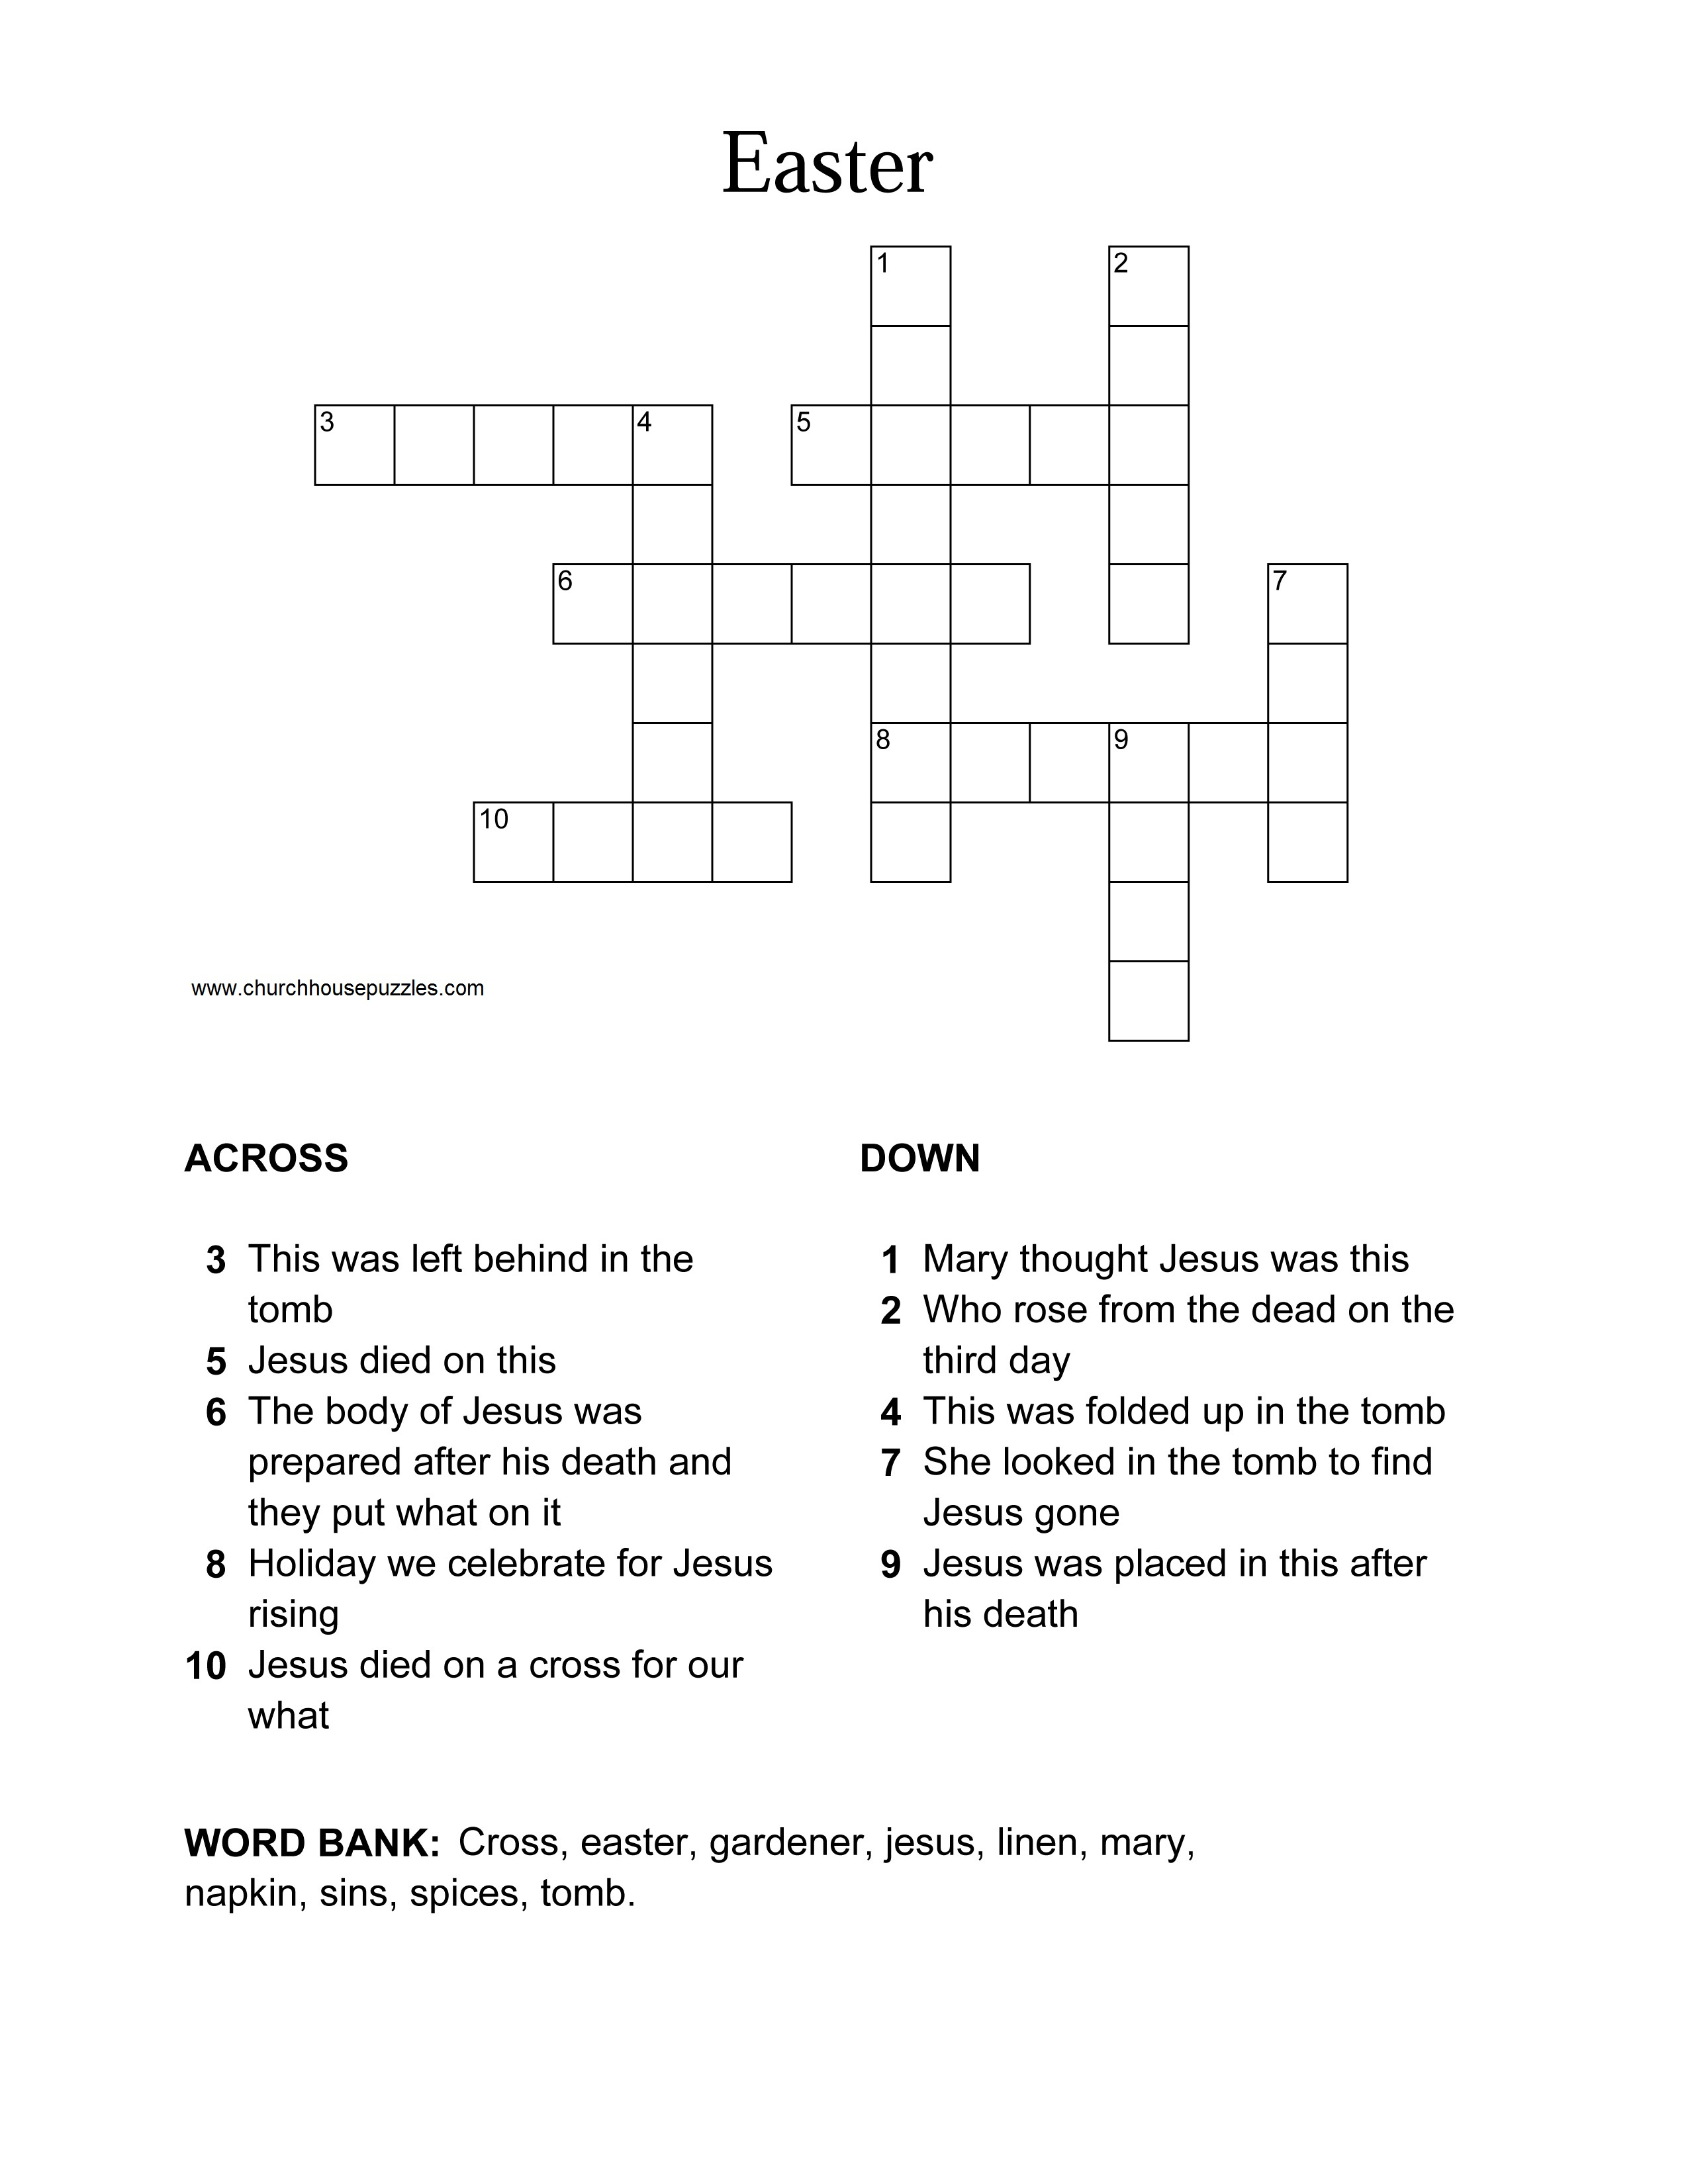 Easter Crossword Puzzle - Printable Crossword Puzzles For Easter